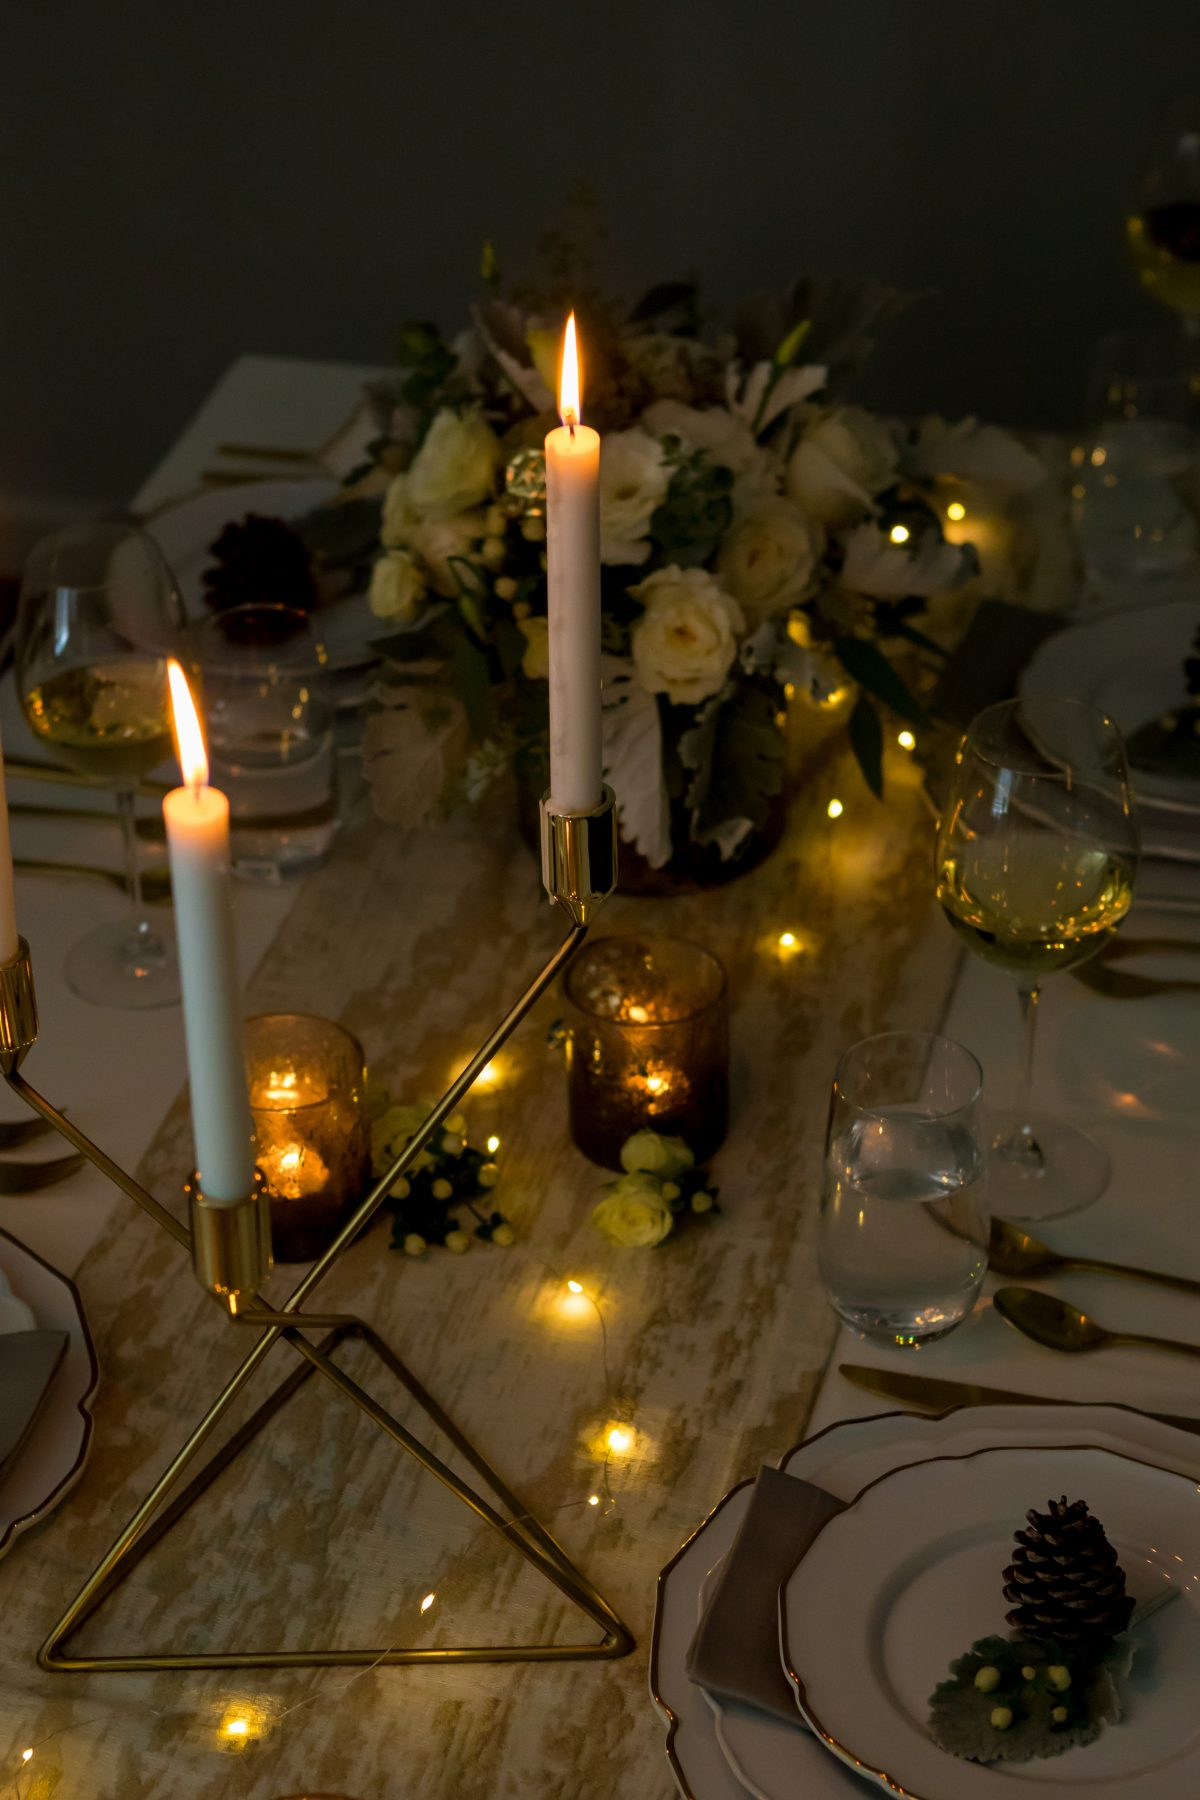 5D4B3916 - Tablescapes - Christmas-candles